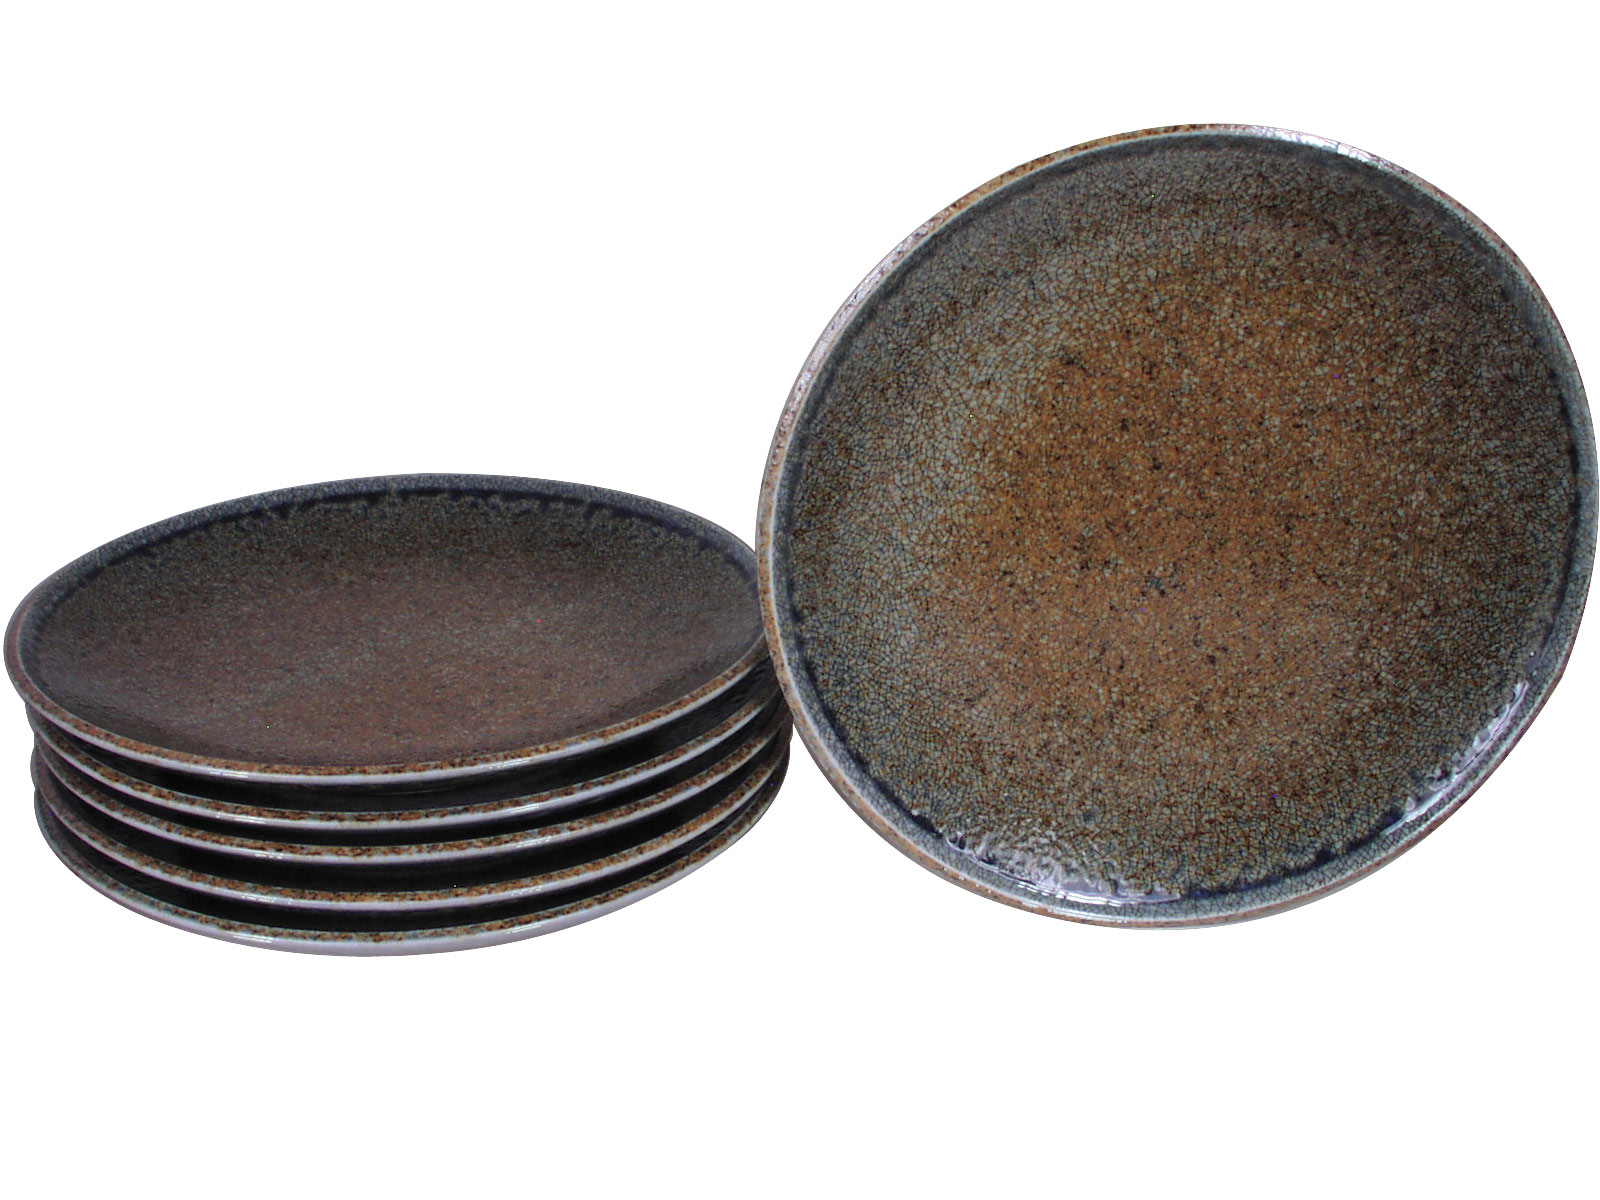 Pale Blue And Earthen Crackled Sand Japanese Dinner Plate